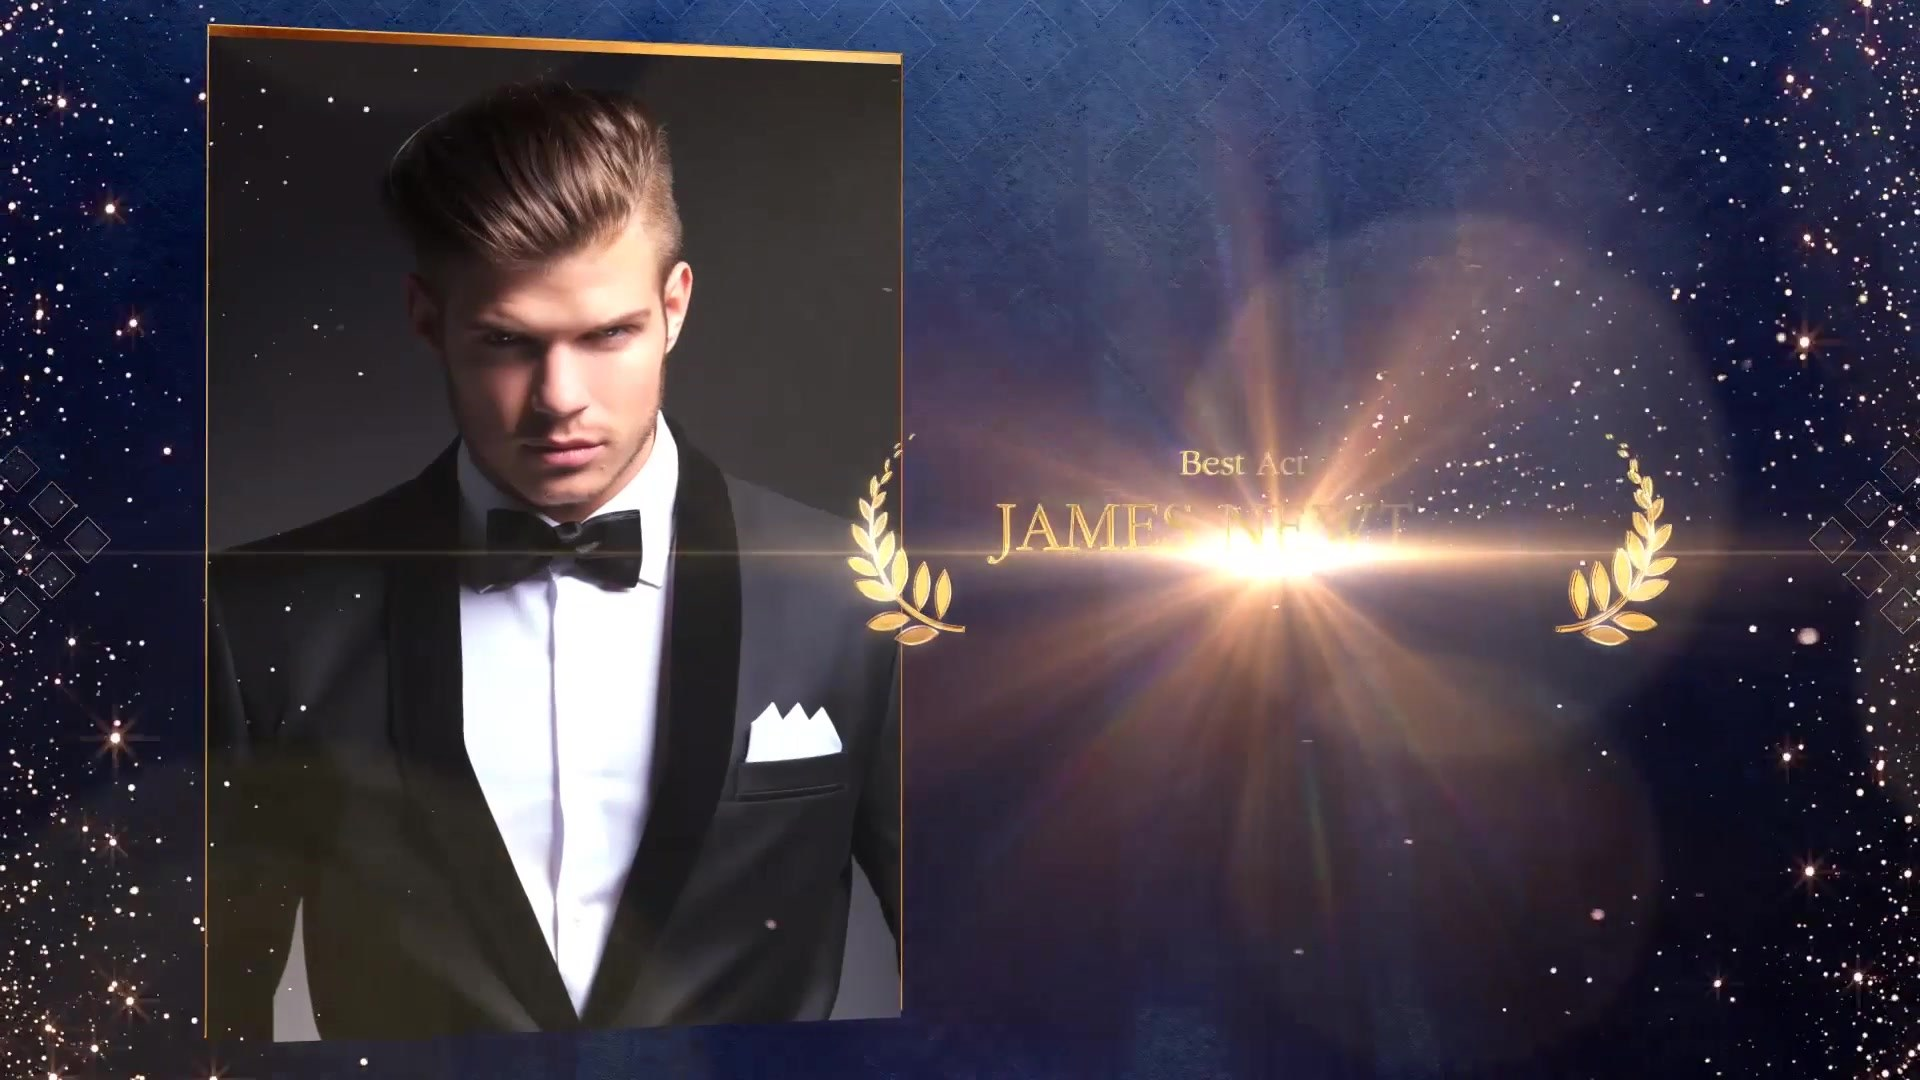 Awards Show - Download Videohive 18981522